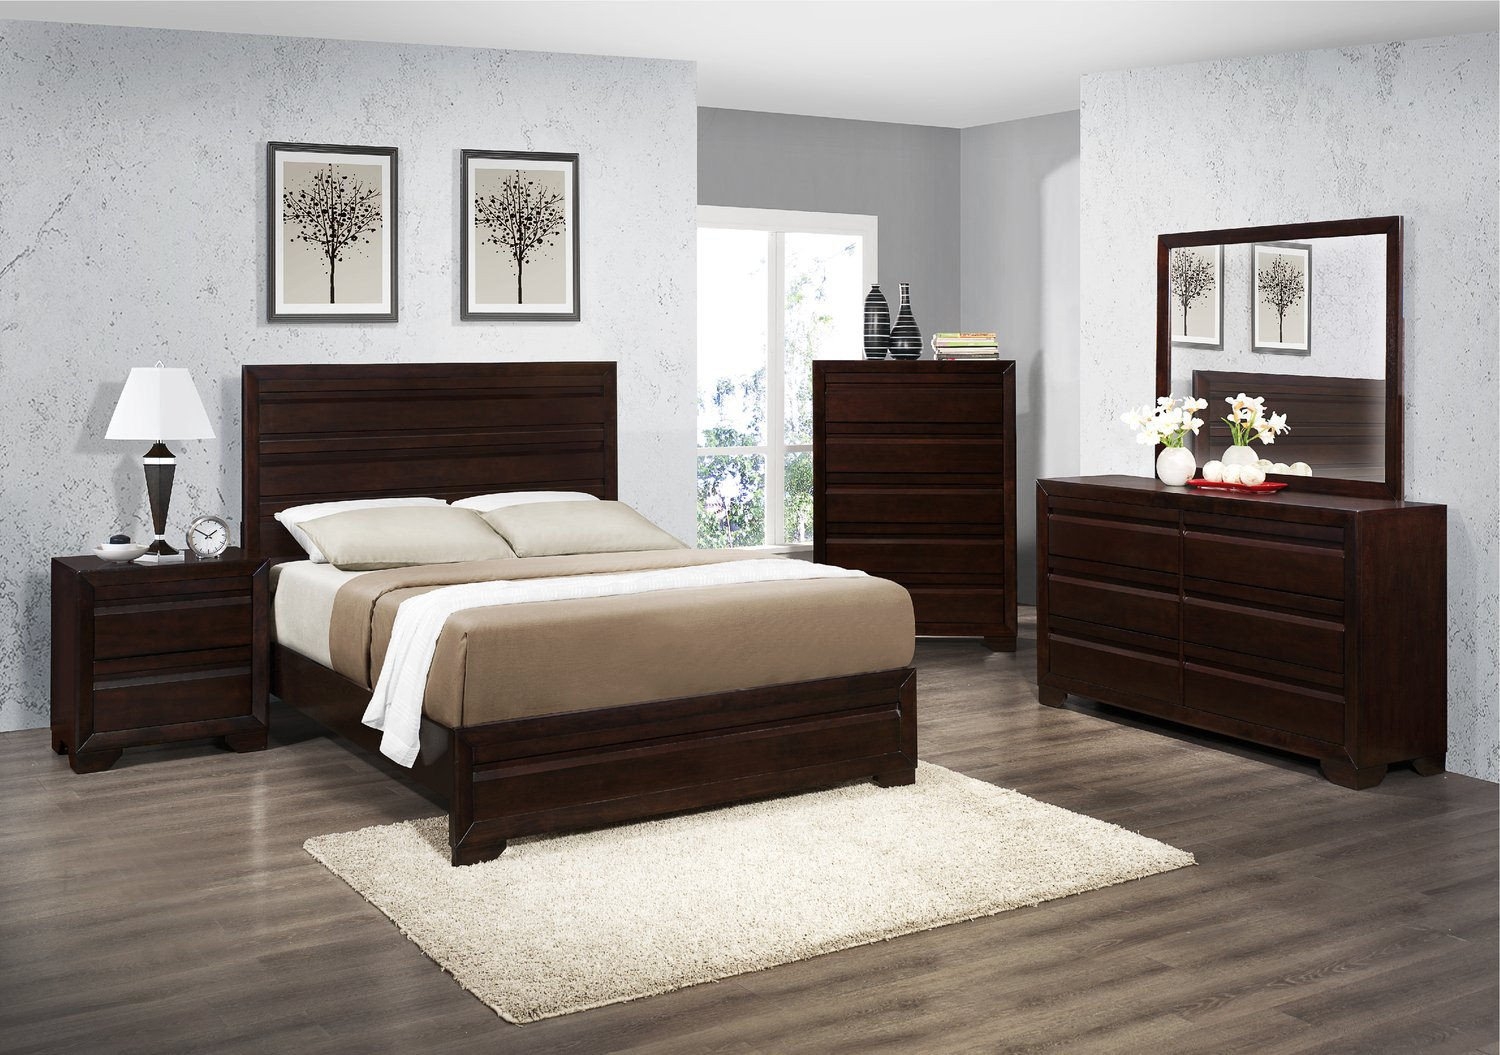 Juararo Queen Bedroom Set Awesome King Bedroom Suit Bedroom Suites Contemporary Bedroom Sets